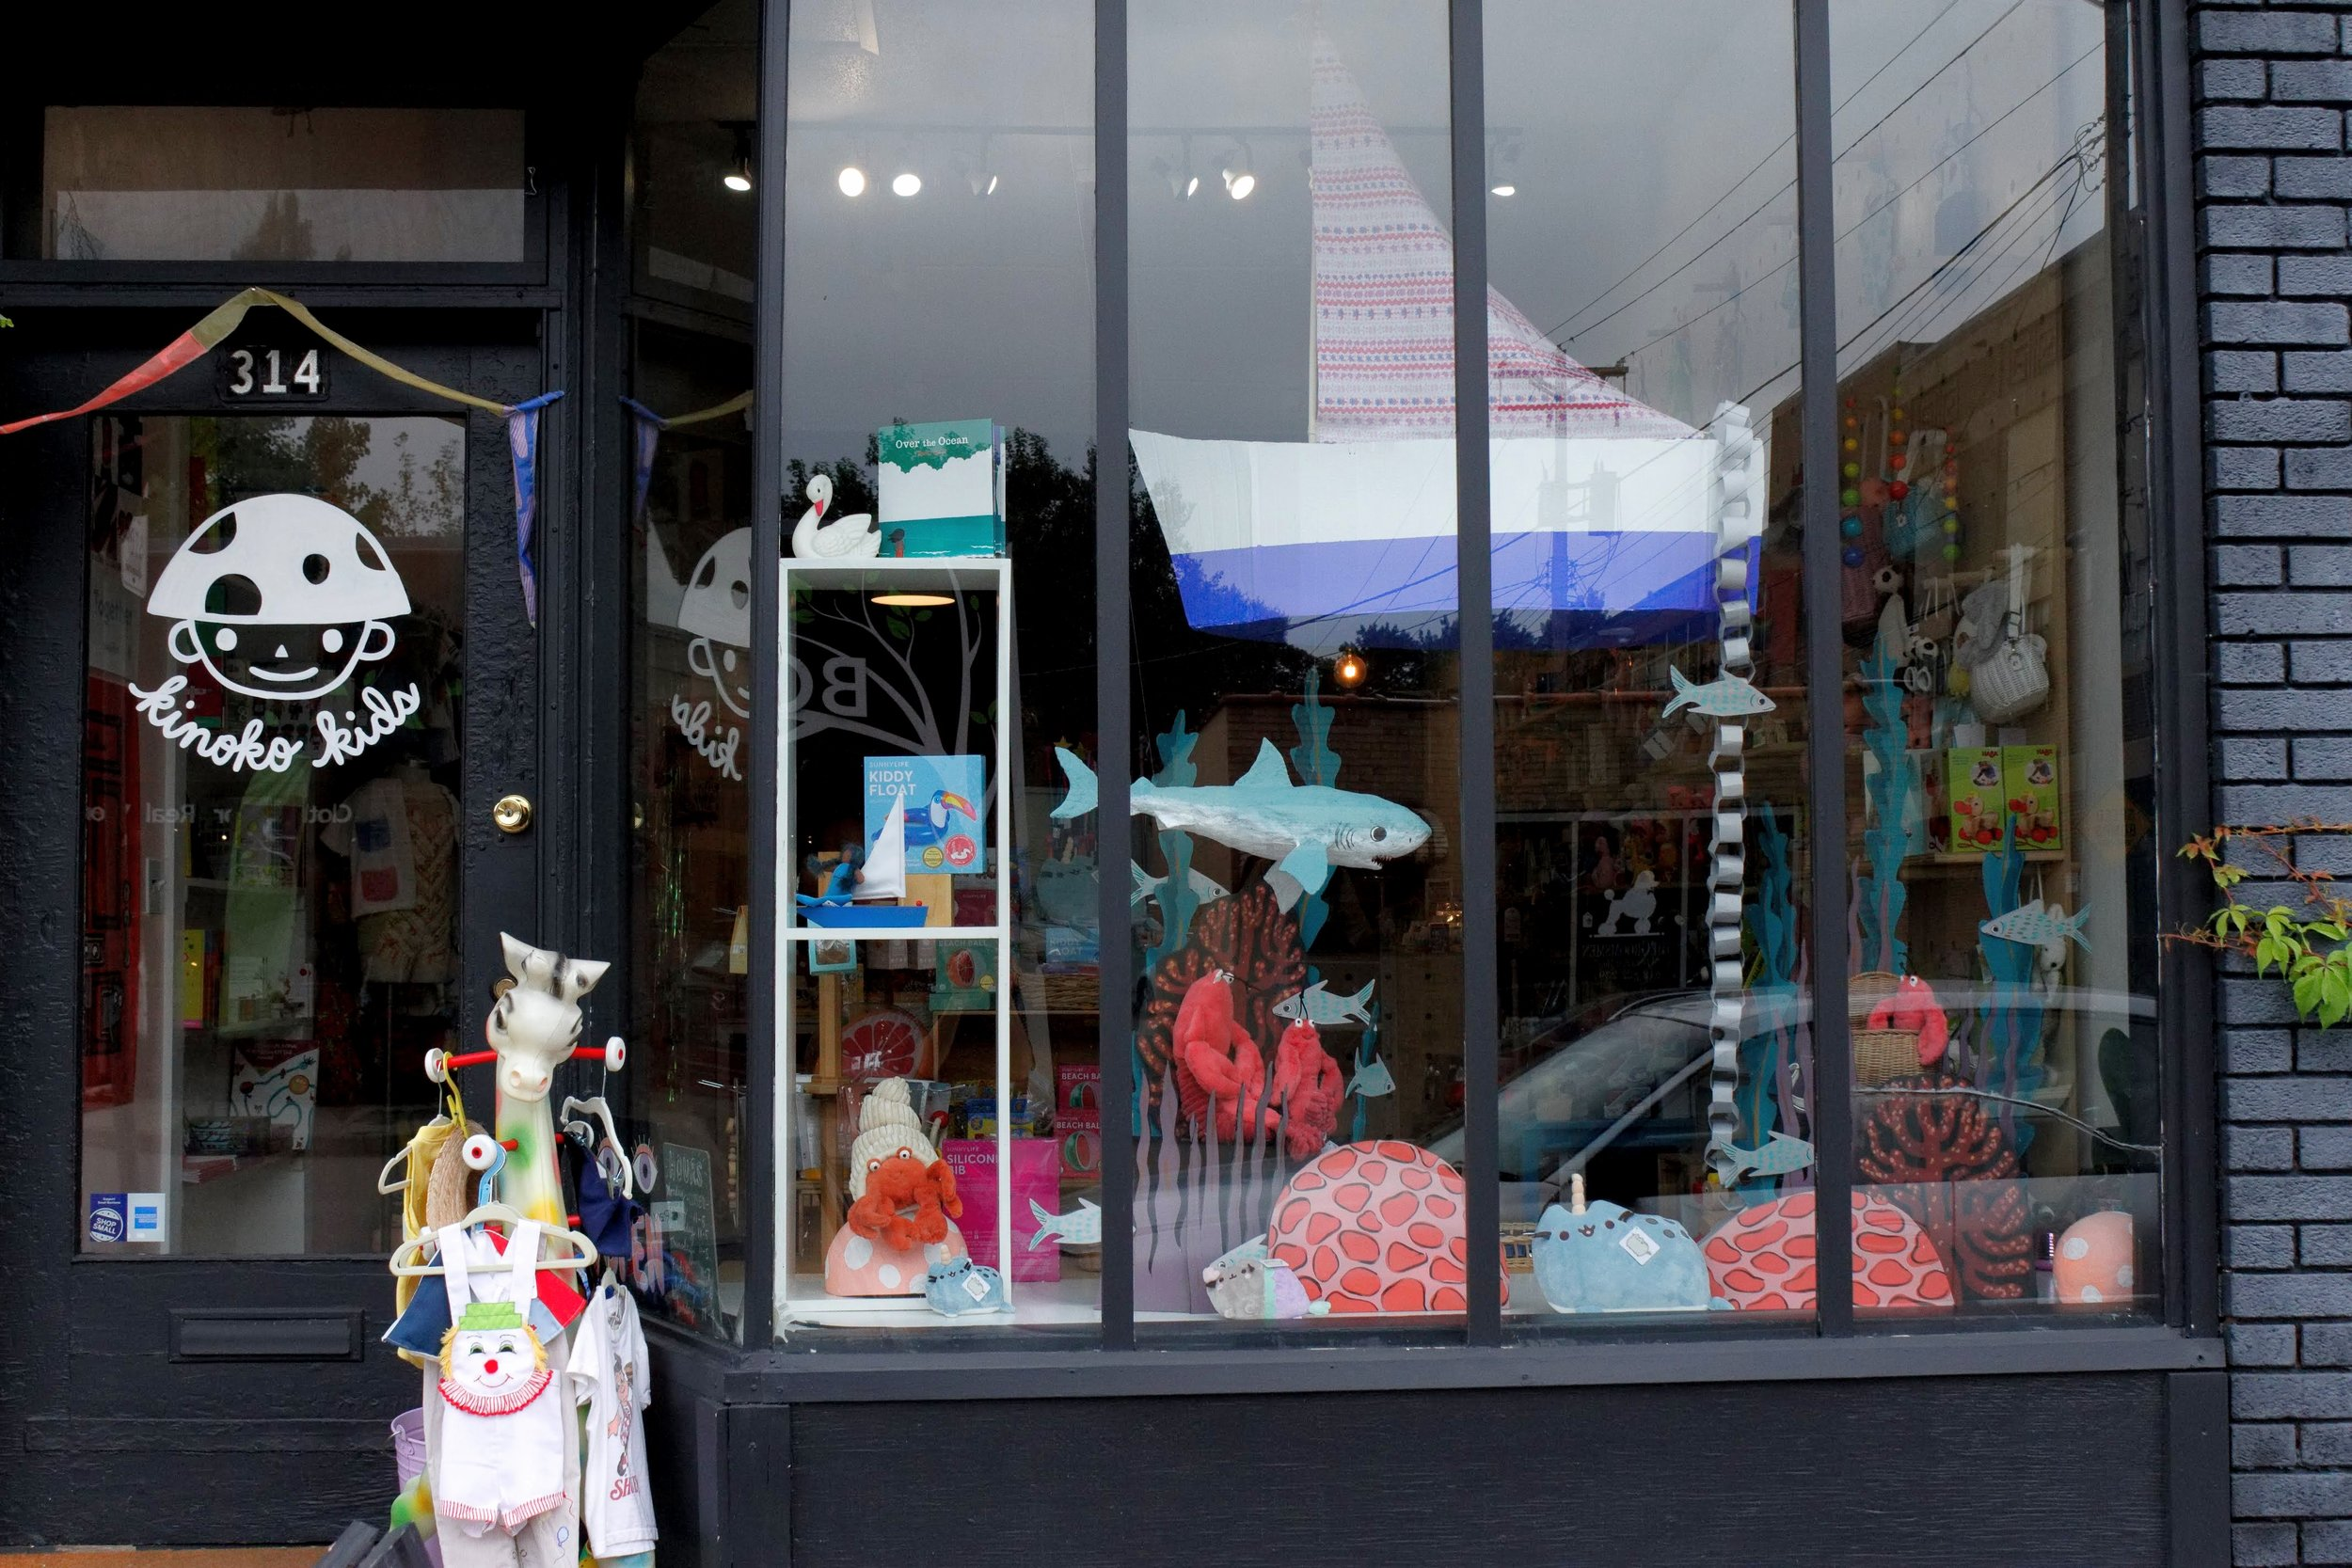 Kinoko Kids store front sits at 314 West 38th Street, right at the intersection of 38th and Grand in South Minneapolis. You could have probably guessed that this rad underwater window display was designed and painted in house by the owners and their artistic families.